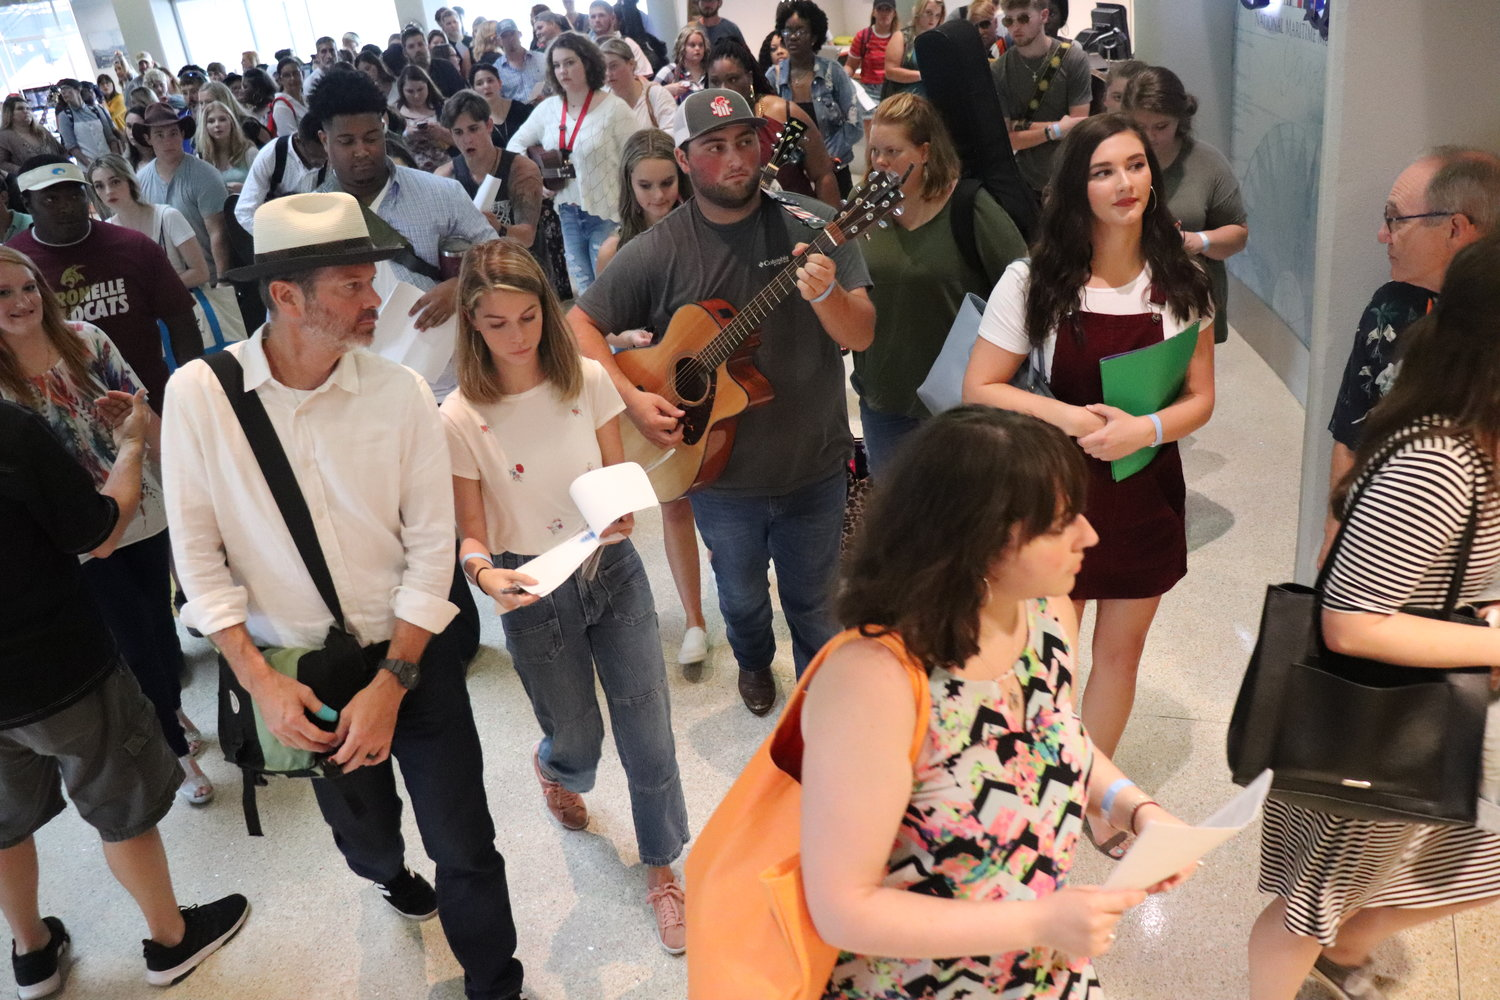 Hopefuls head upstairs to meet producers from American Idol.